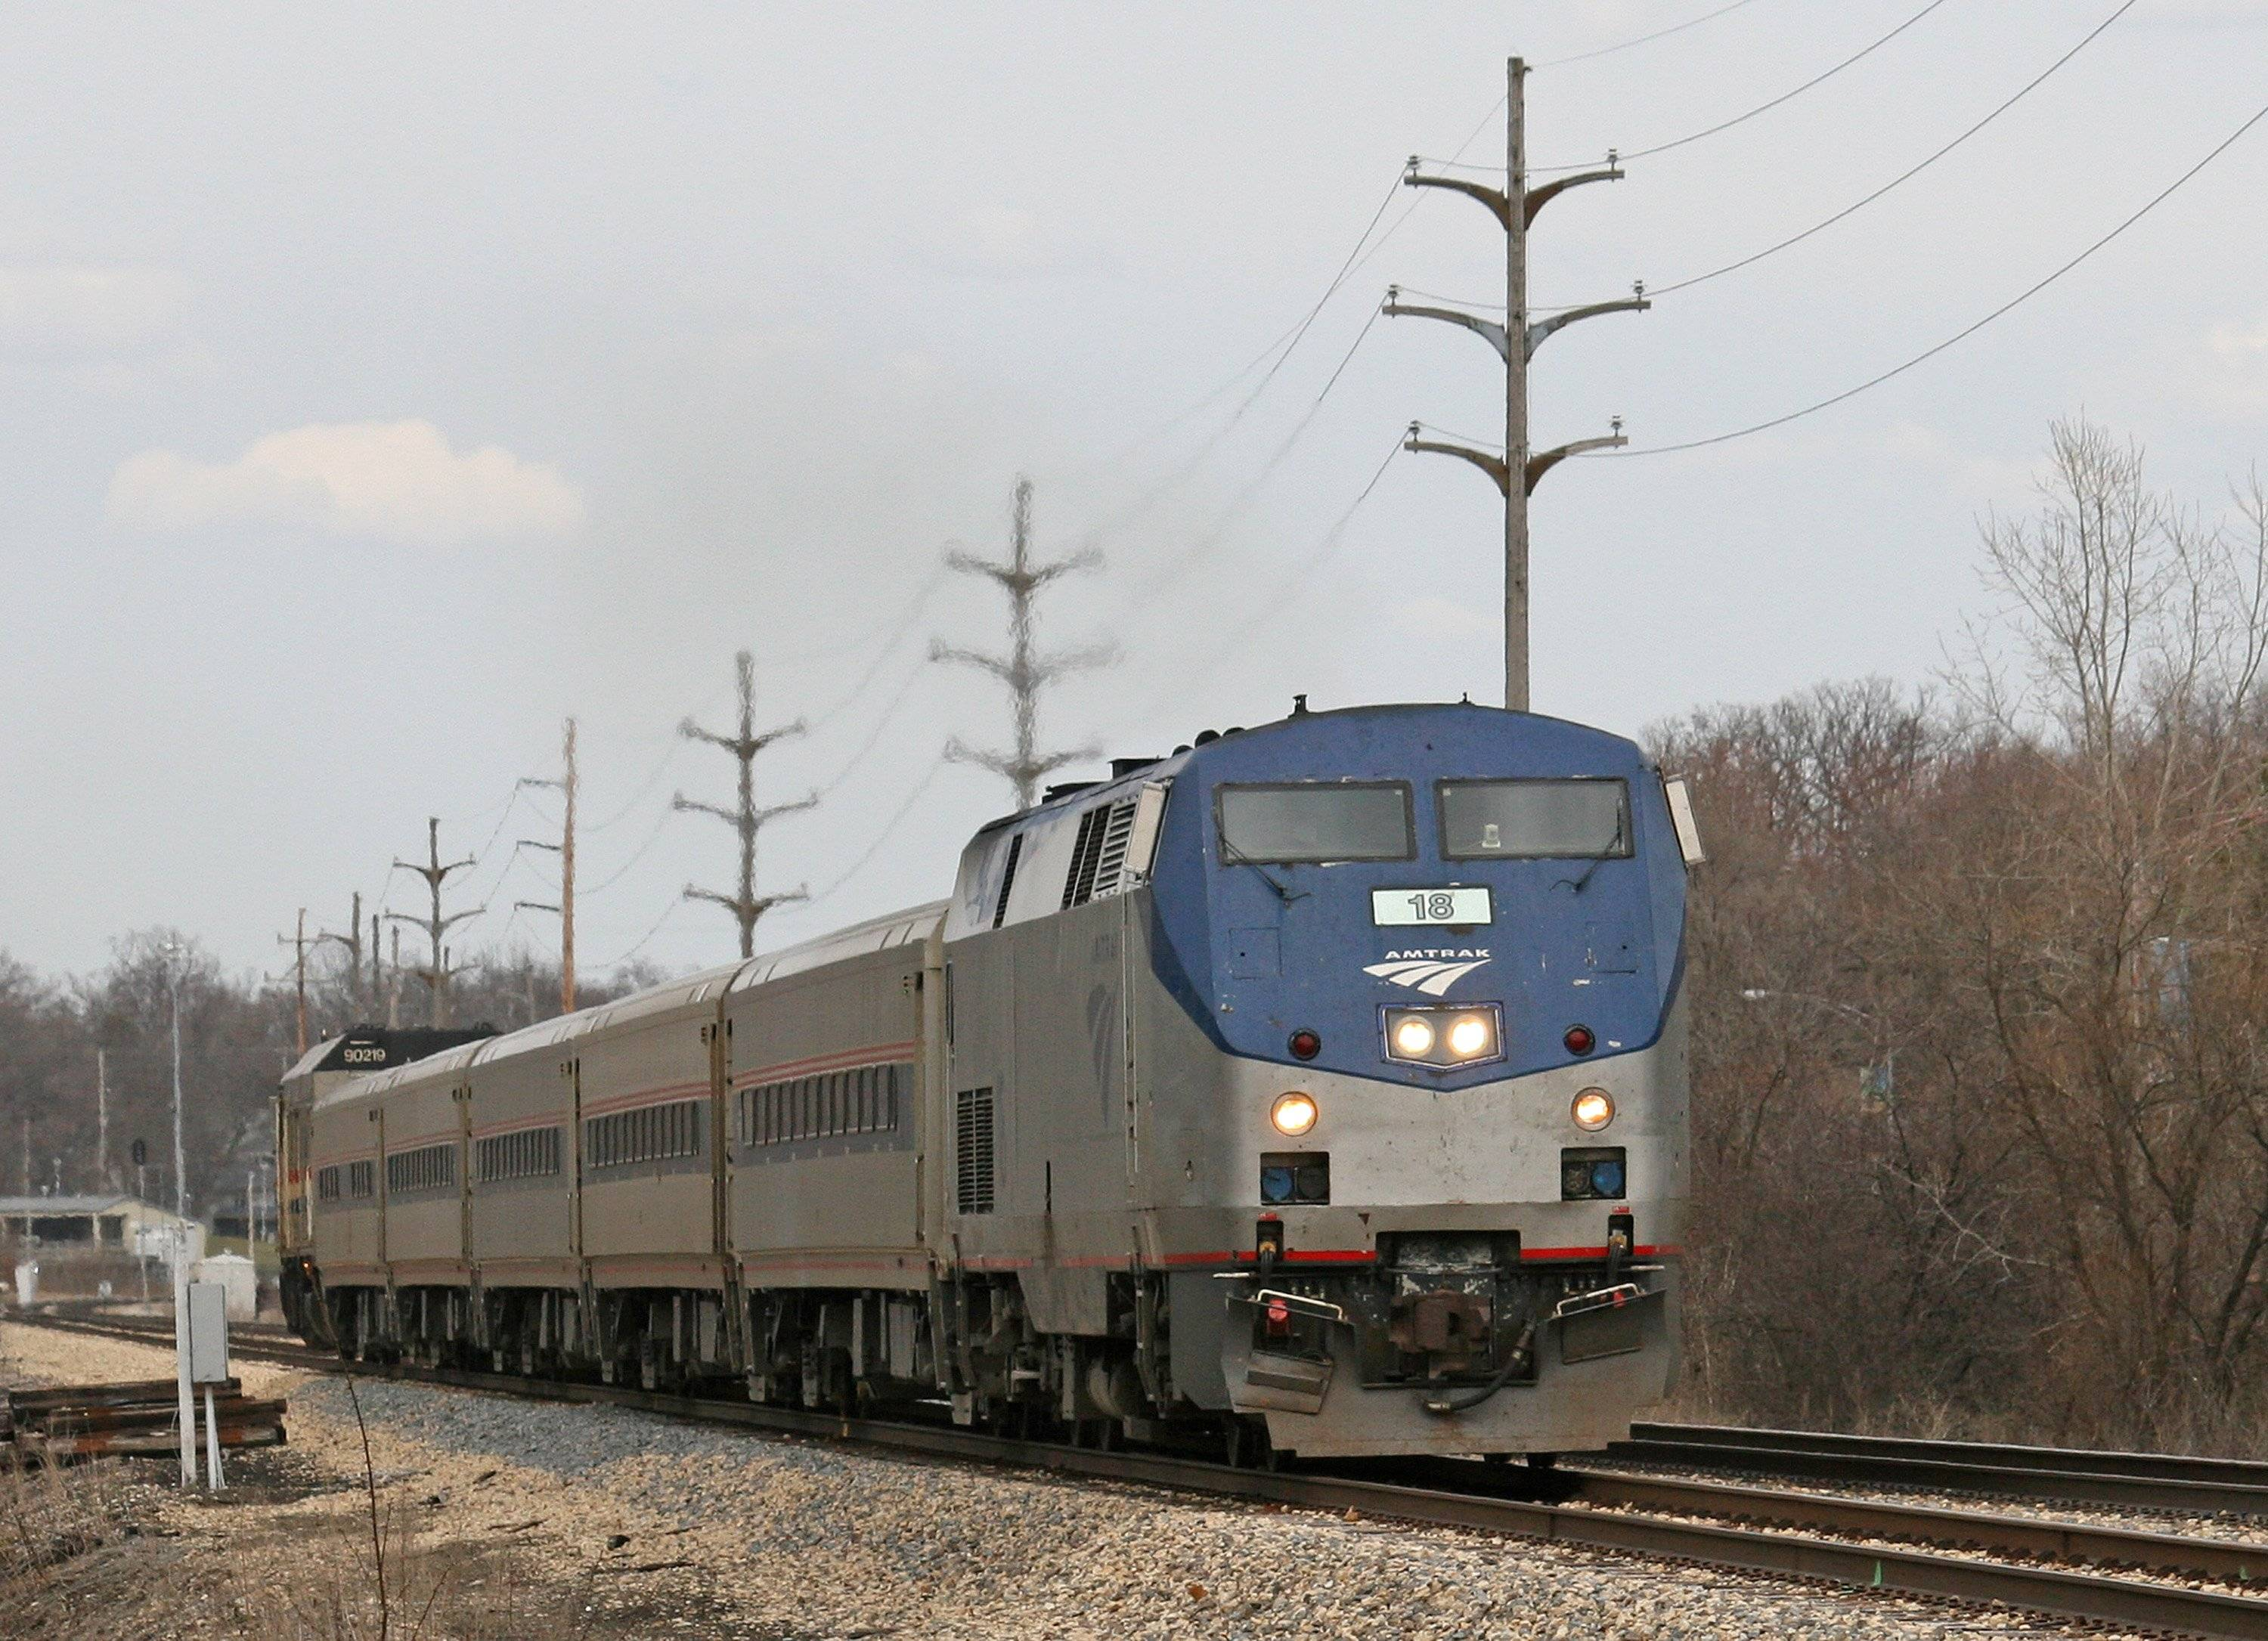 Associated PressGov. Pat Quinn announced last week the development of Amtrak service from Chicago to Rockford. The route will include stops in Huntley and Elgin.